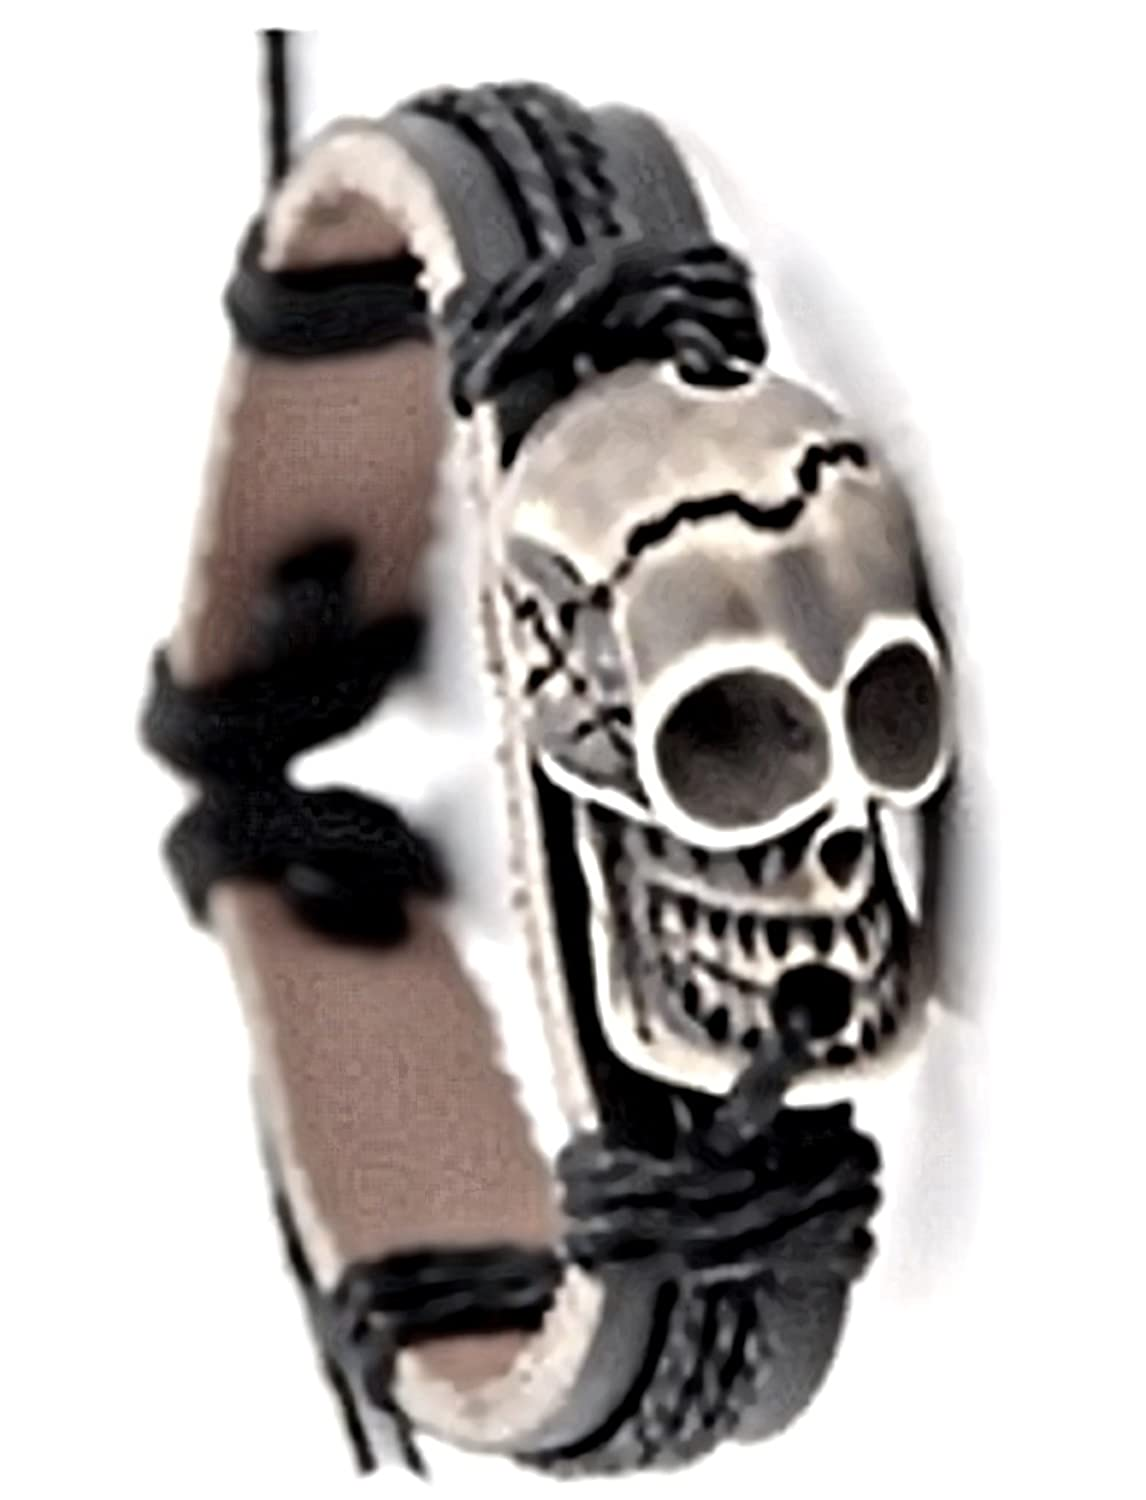 Tribal Voodoo Pirate Skull Black Leather Bracelet